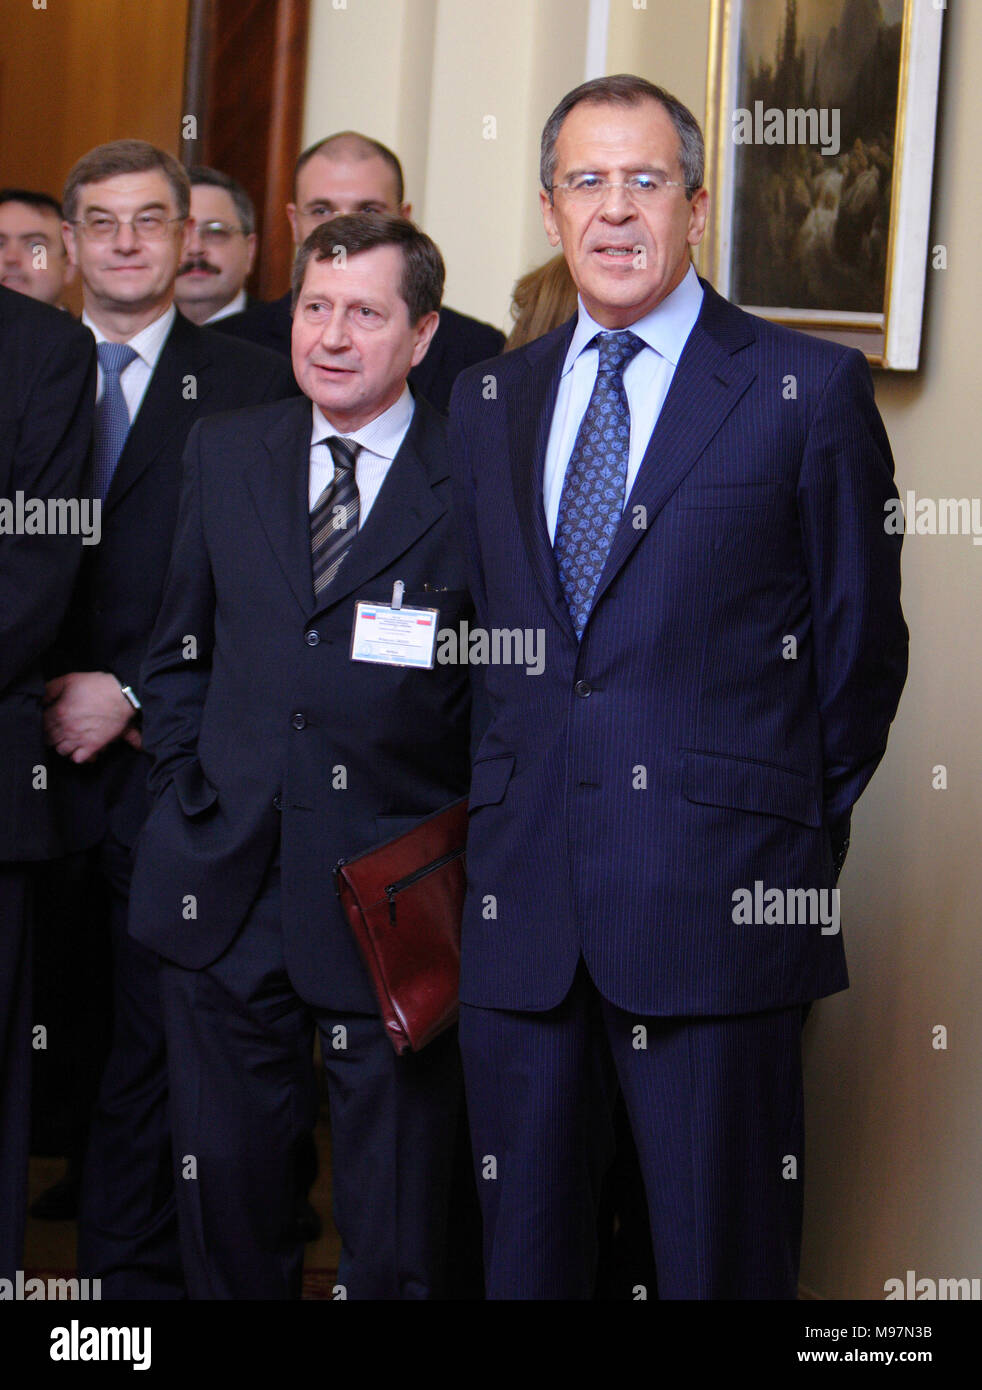 Warsaw, Masovia / Poland - 2006/10/05: Sergey Lavrov - Foreign Affairs Minister of Russian Federation with assisting team during a diplomatic meeting  - Stock Image